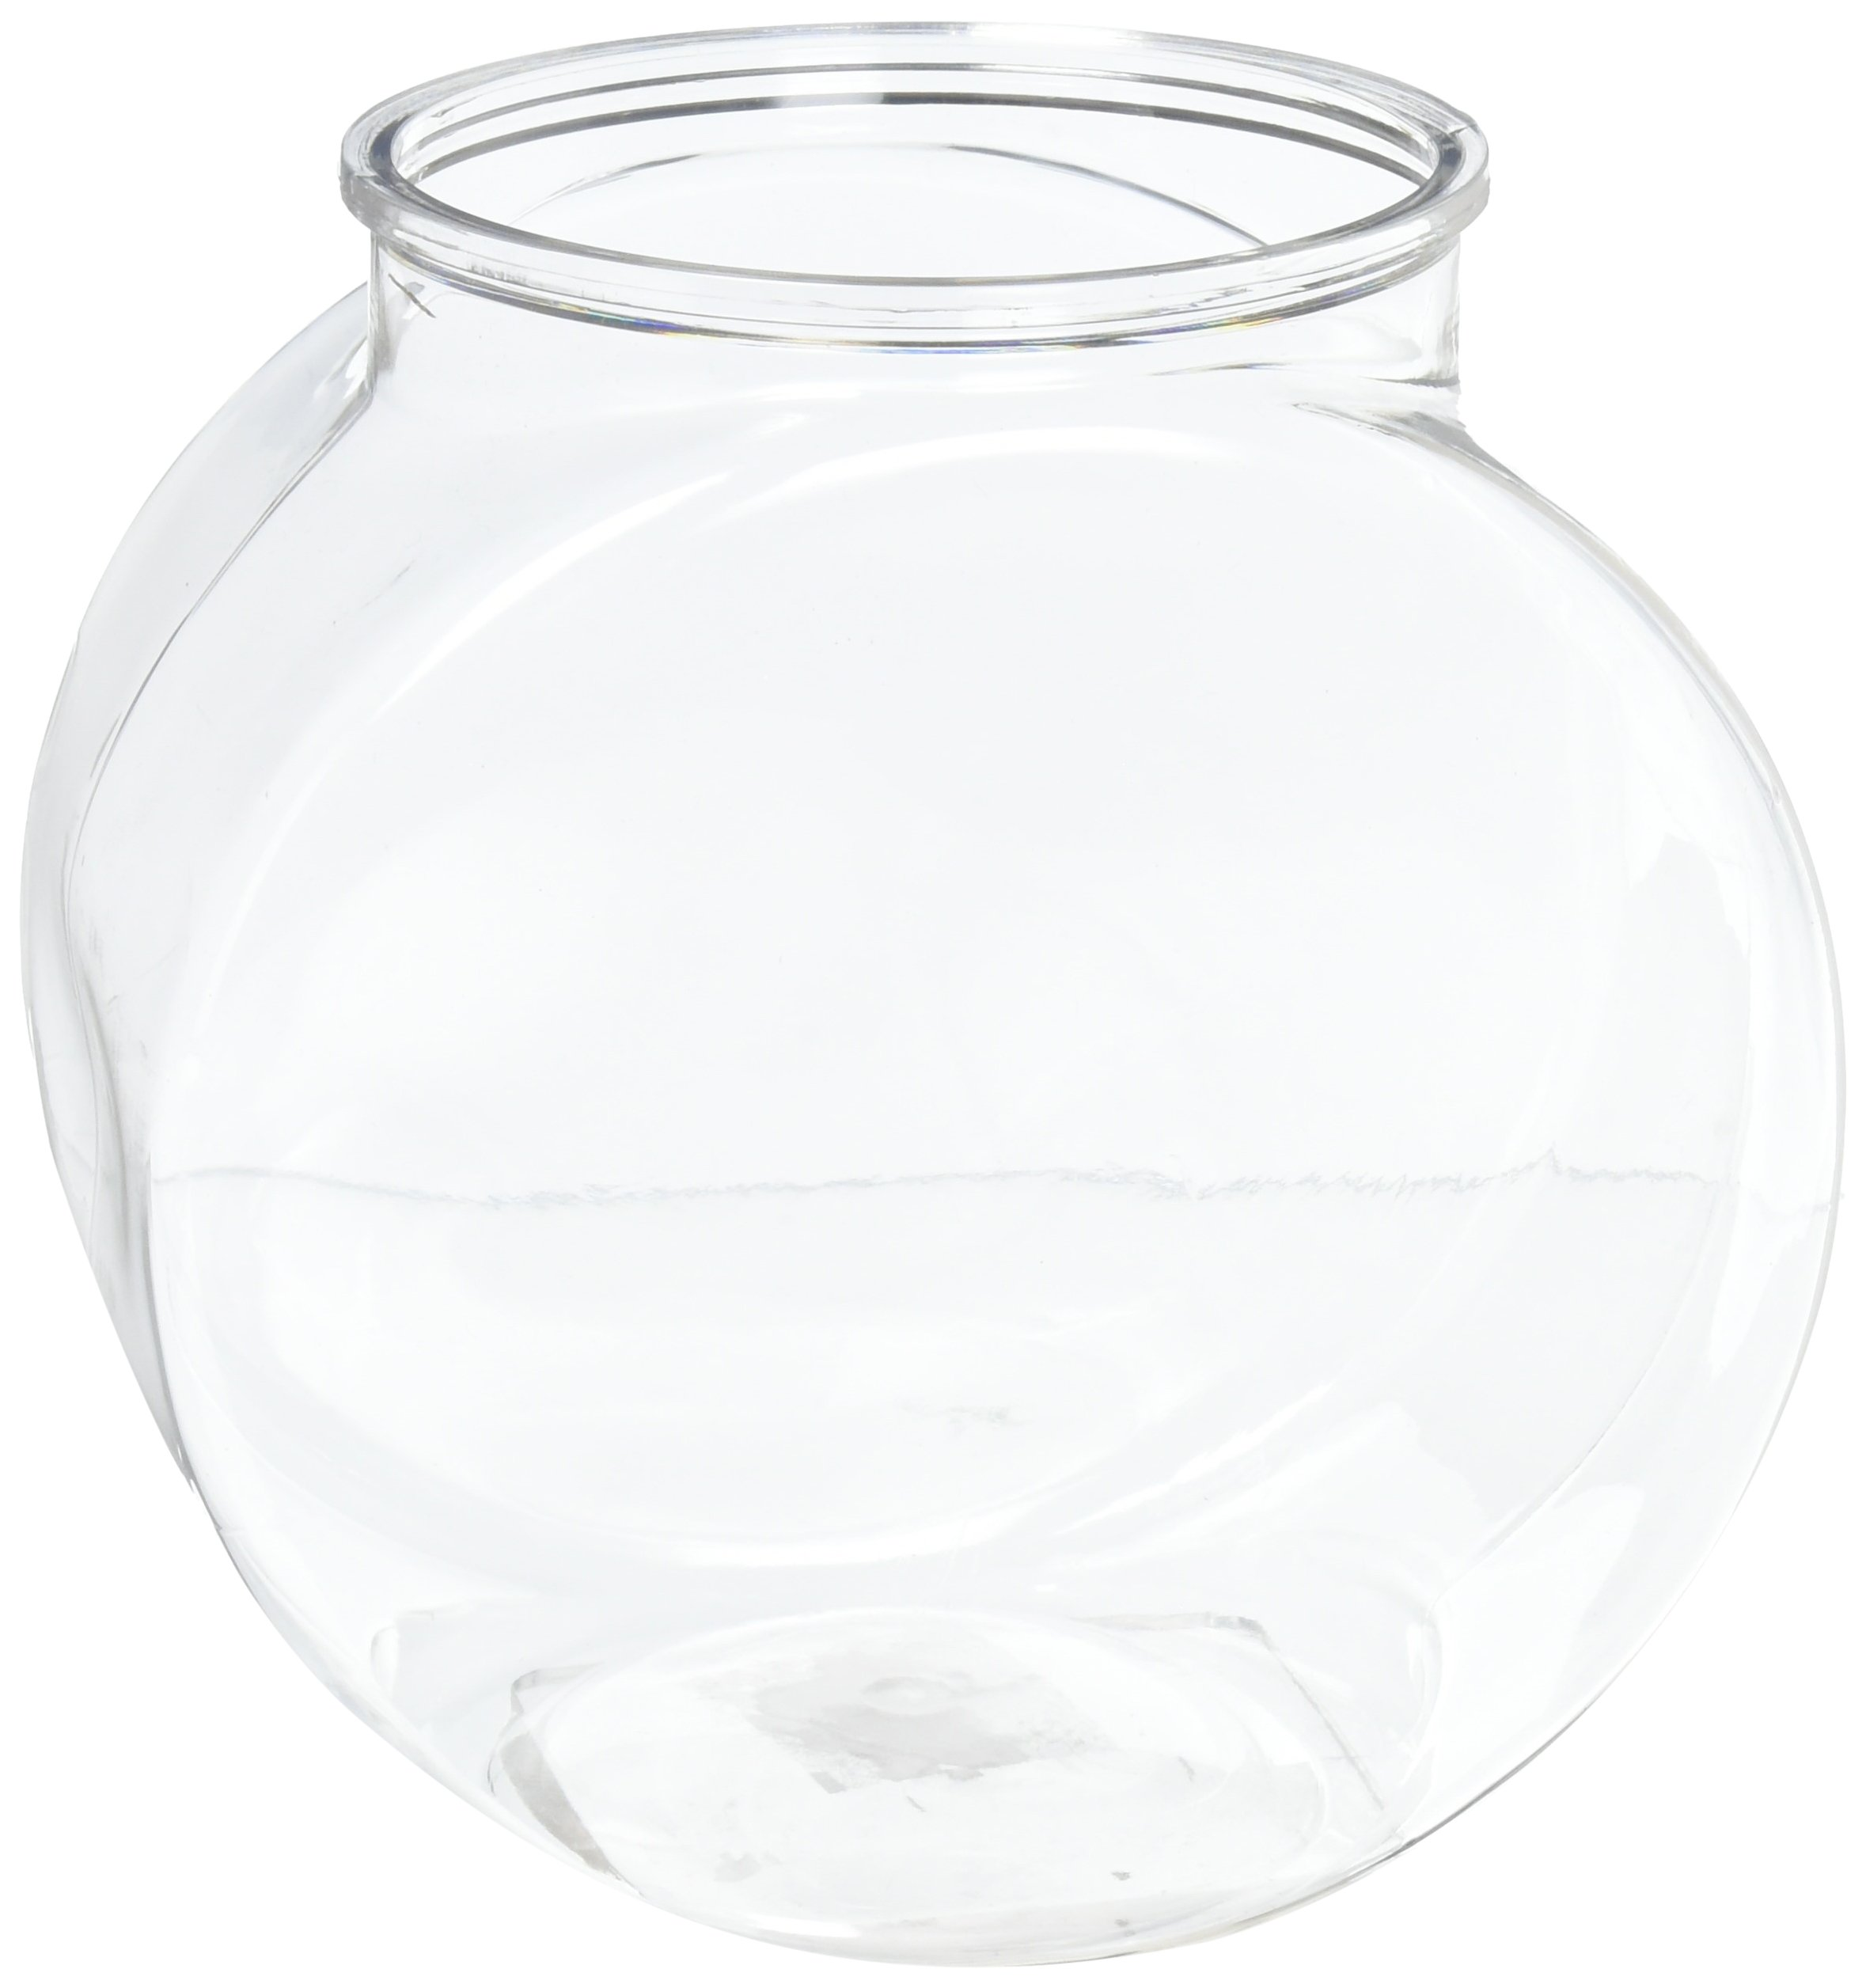 Aqua Accents 0.5 Gallon Aquarium Bowl [Set of 5]